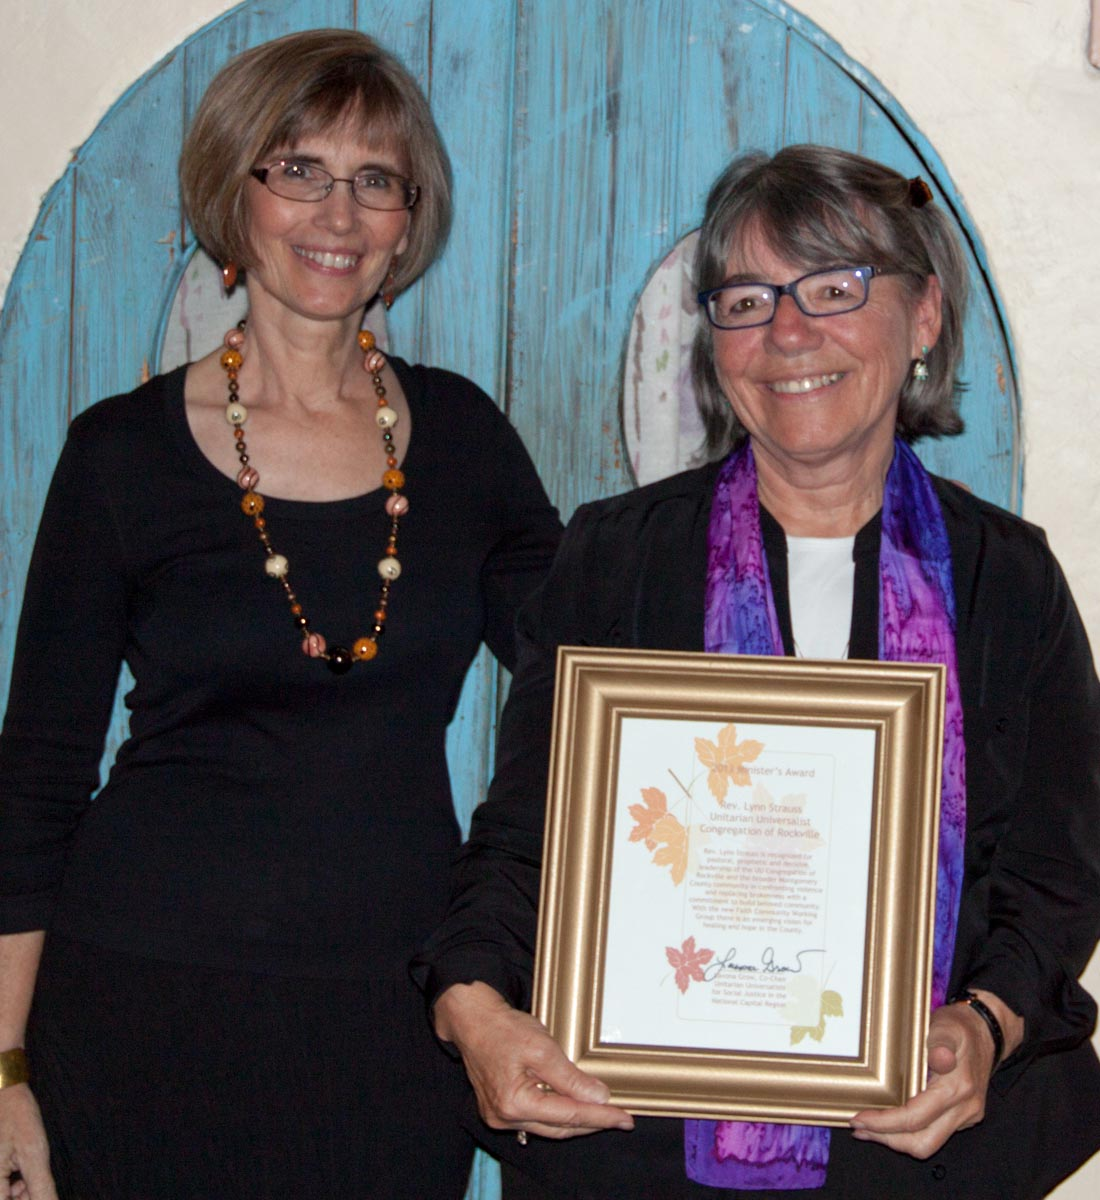 Lavona Grow and Rev. Lynn Strauss